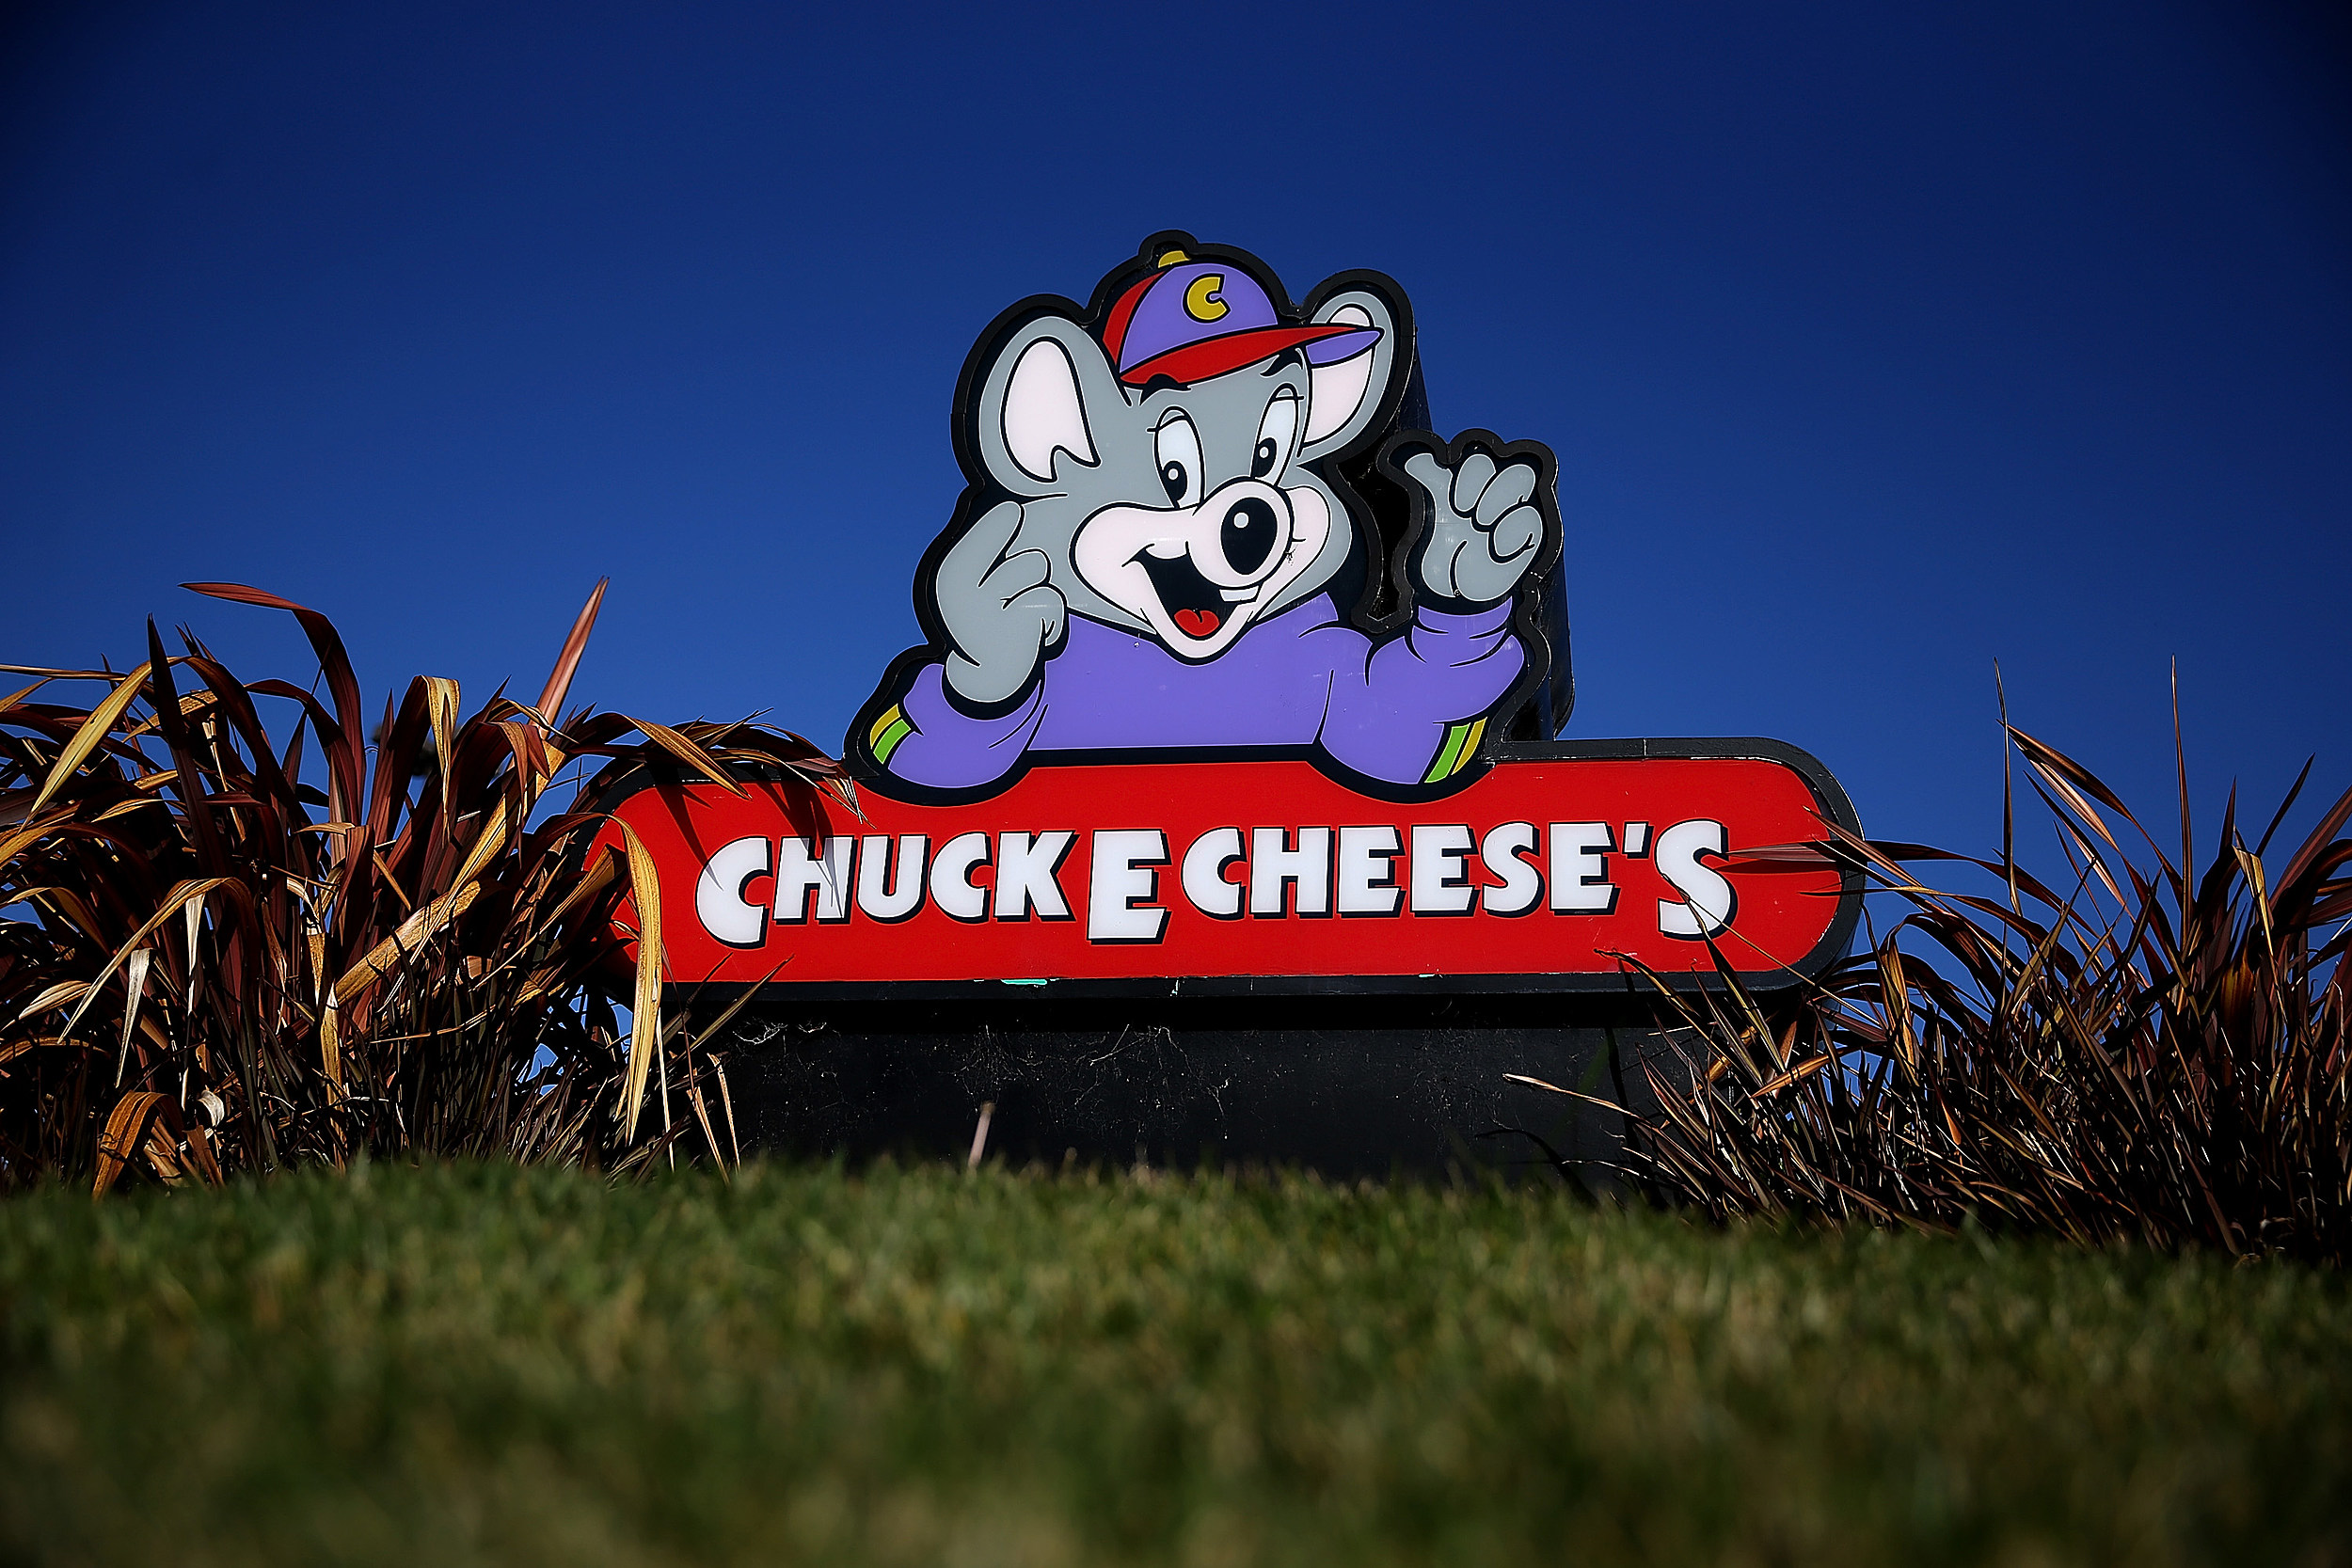 ridiculous adults all out brawl in front of kids chucky cheese